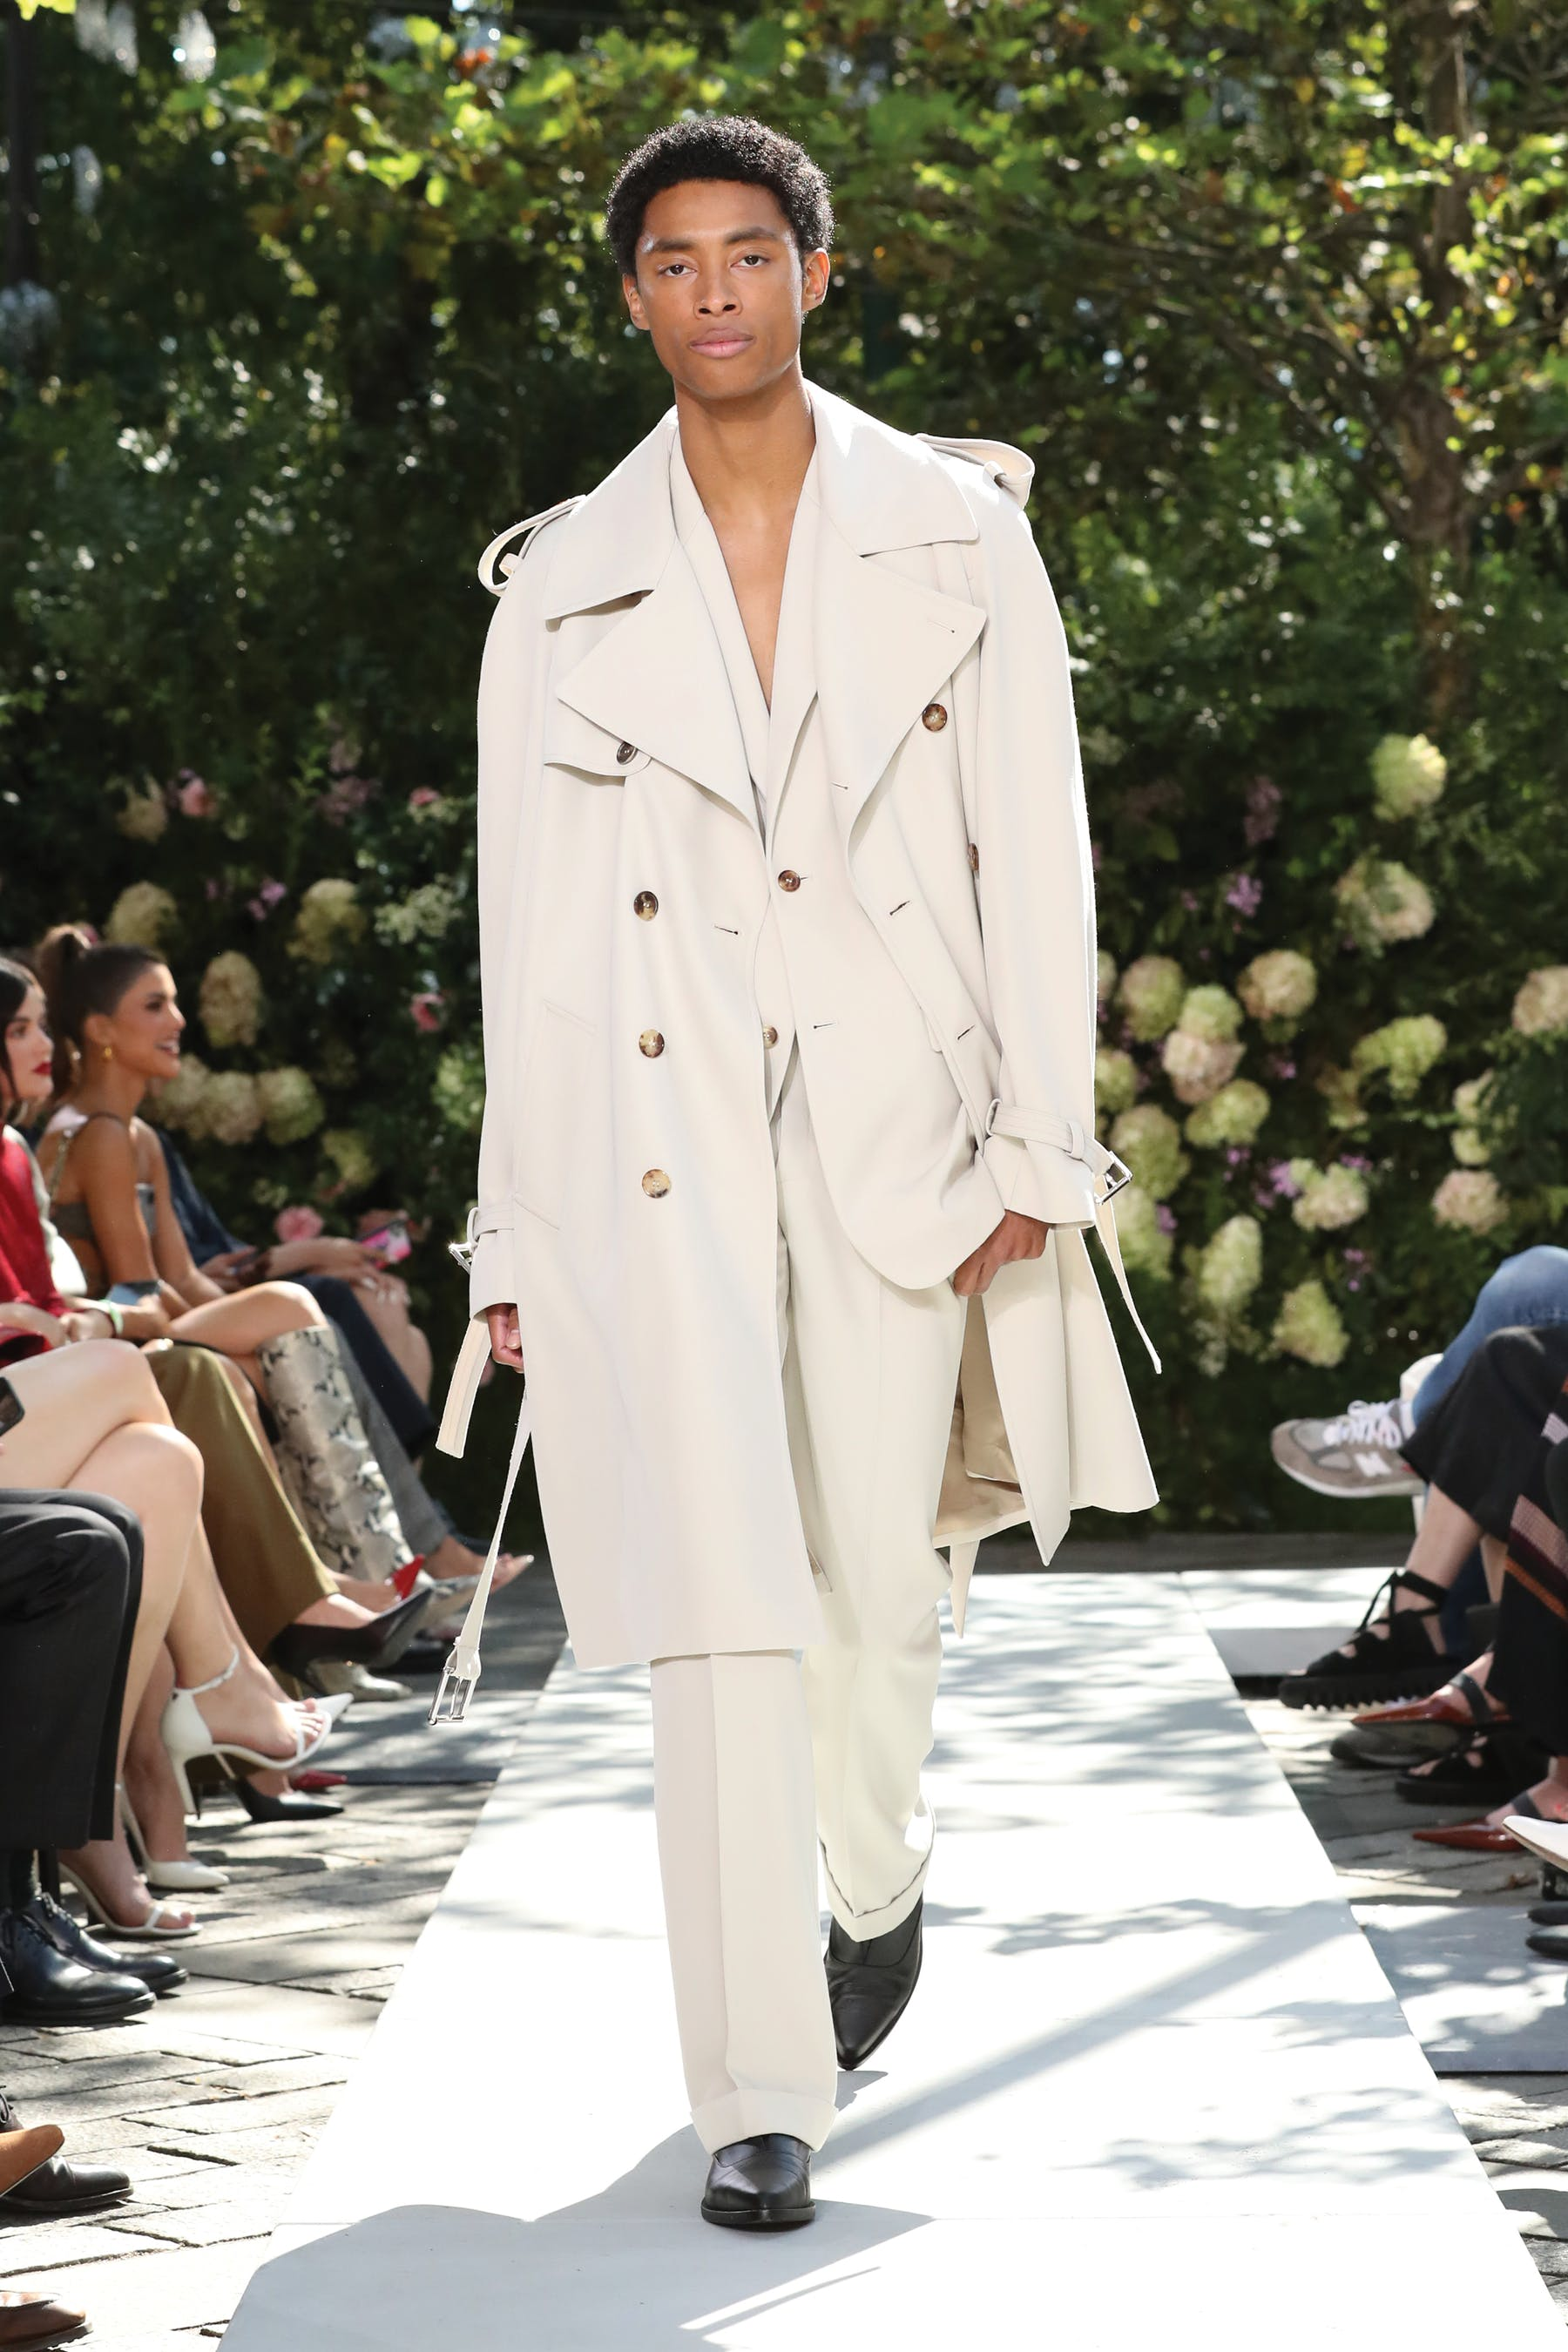 ss22-look-11